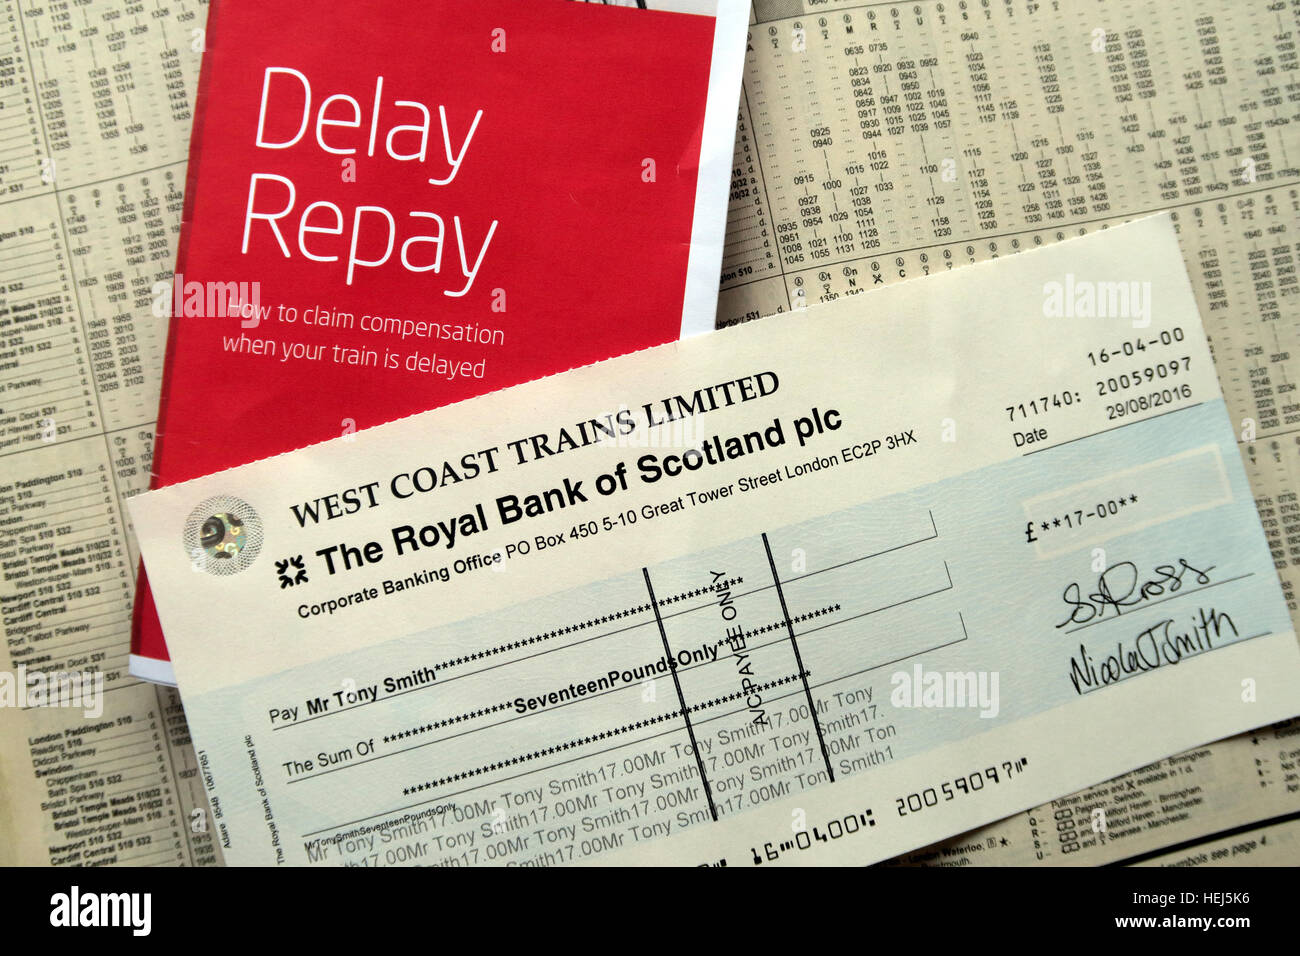 WCML,repayment,rebate,credit,TOC,compensation,for,late,rail,journey,DelayRepay,VirginTrains,timetable,NRCoT,late,trains,train,franchise,privatised,renationalised,private,fragmented,infrastructure,railway,refund,refunded,Train Operating Company,West,Coast,Trains,Limited,West,Coast,Trains,Ltd,GoTonySmith,@HotpixUK,Tony,Smith,UK,GB,Great,Britain,United,Kingdom,English,BR,Scottish,British,Welsh,problem,with,problem with,issue with,TOC,TOCs,transport,tour,tourism,tourists,urban,fail,infrastructure,delay,delays,delayed.late,later,Expensive,ticket,price,prices,Buy Pictures of,Buy Images Of,Images of,Stock Images,Tony Smith,United Kingdom,Great Britain,British Isles,train operating companies,National,Rail,Conditions,of,Travel,ticket prices